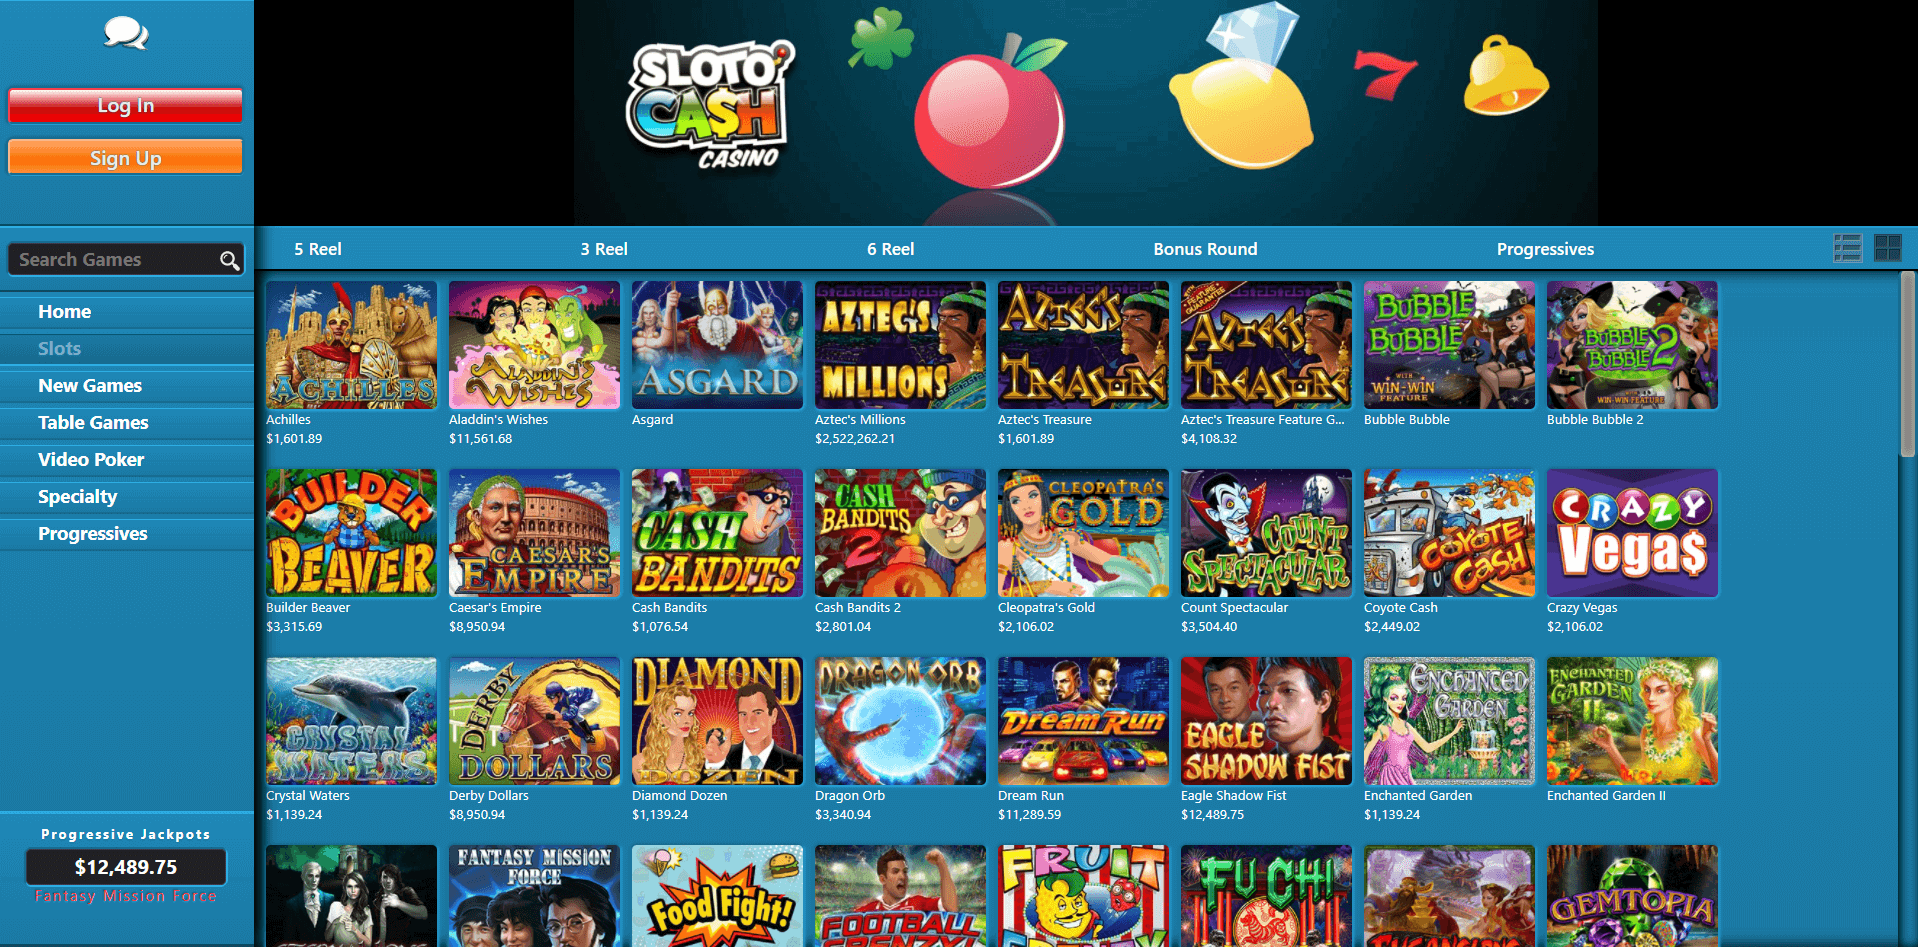 100 Free Spins at Sloto Cash Casino!